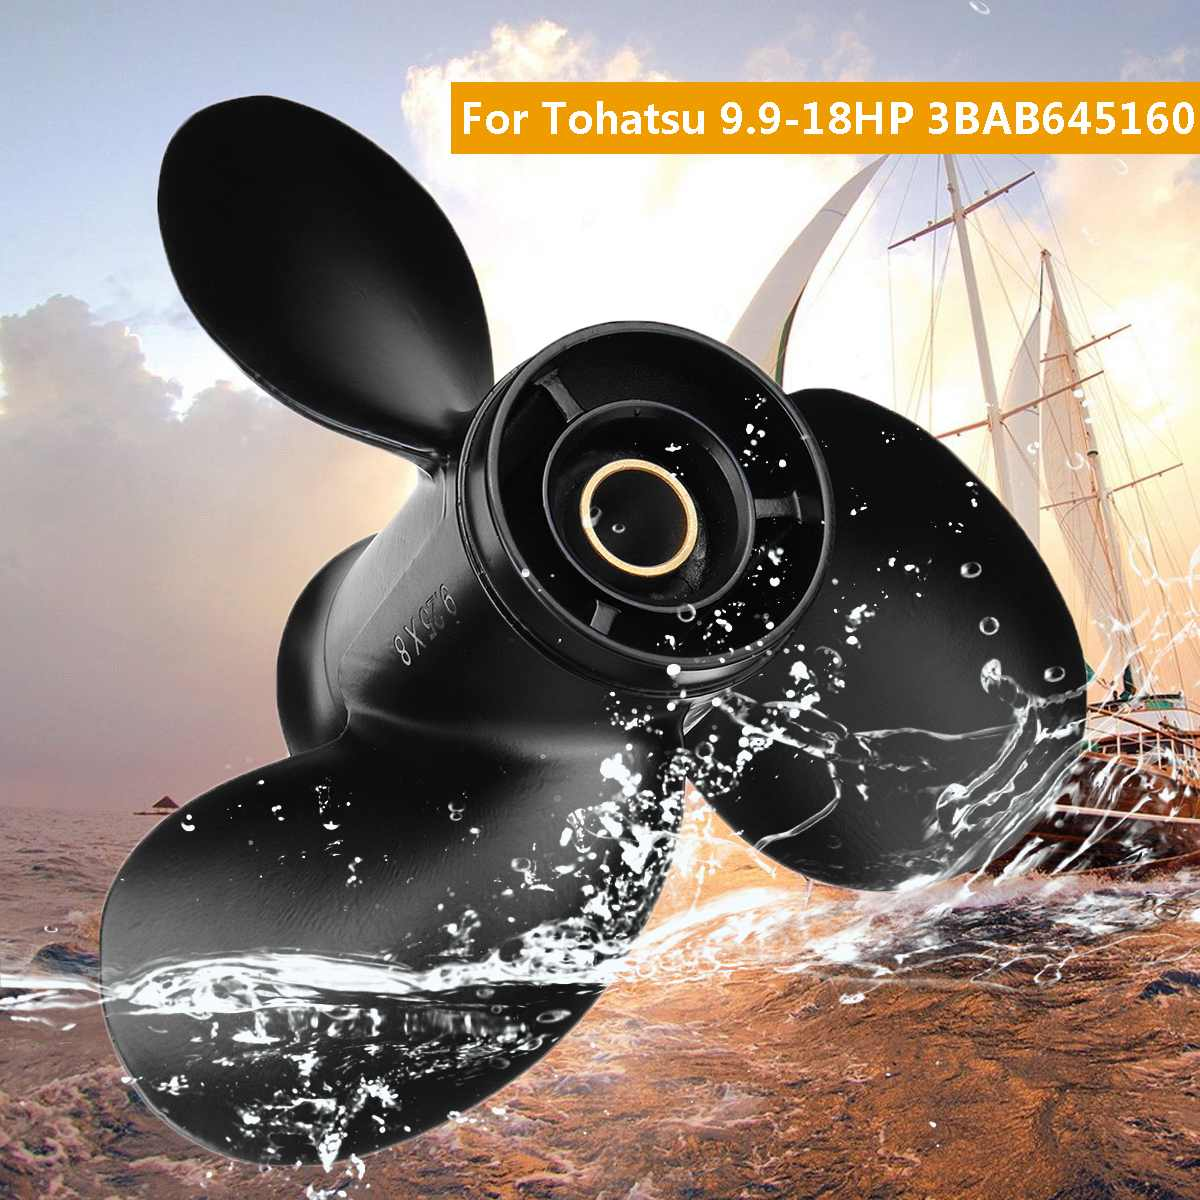 3BAB645160 9.25 X 8 Outboard Propeller For Tohatsu-Mercury 9.9-20HP Black Standard Rotation Aluminum 3 Blades 14 Spline Tooth